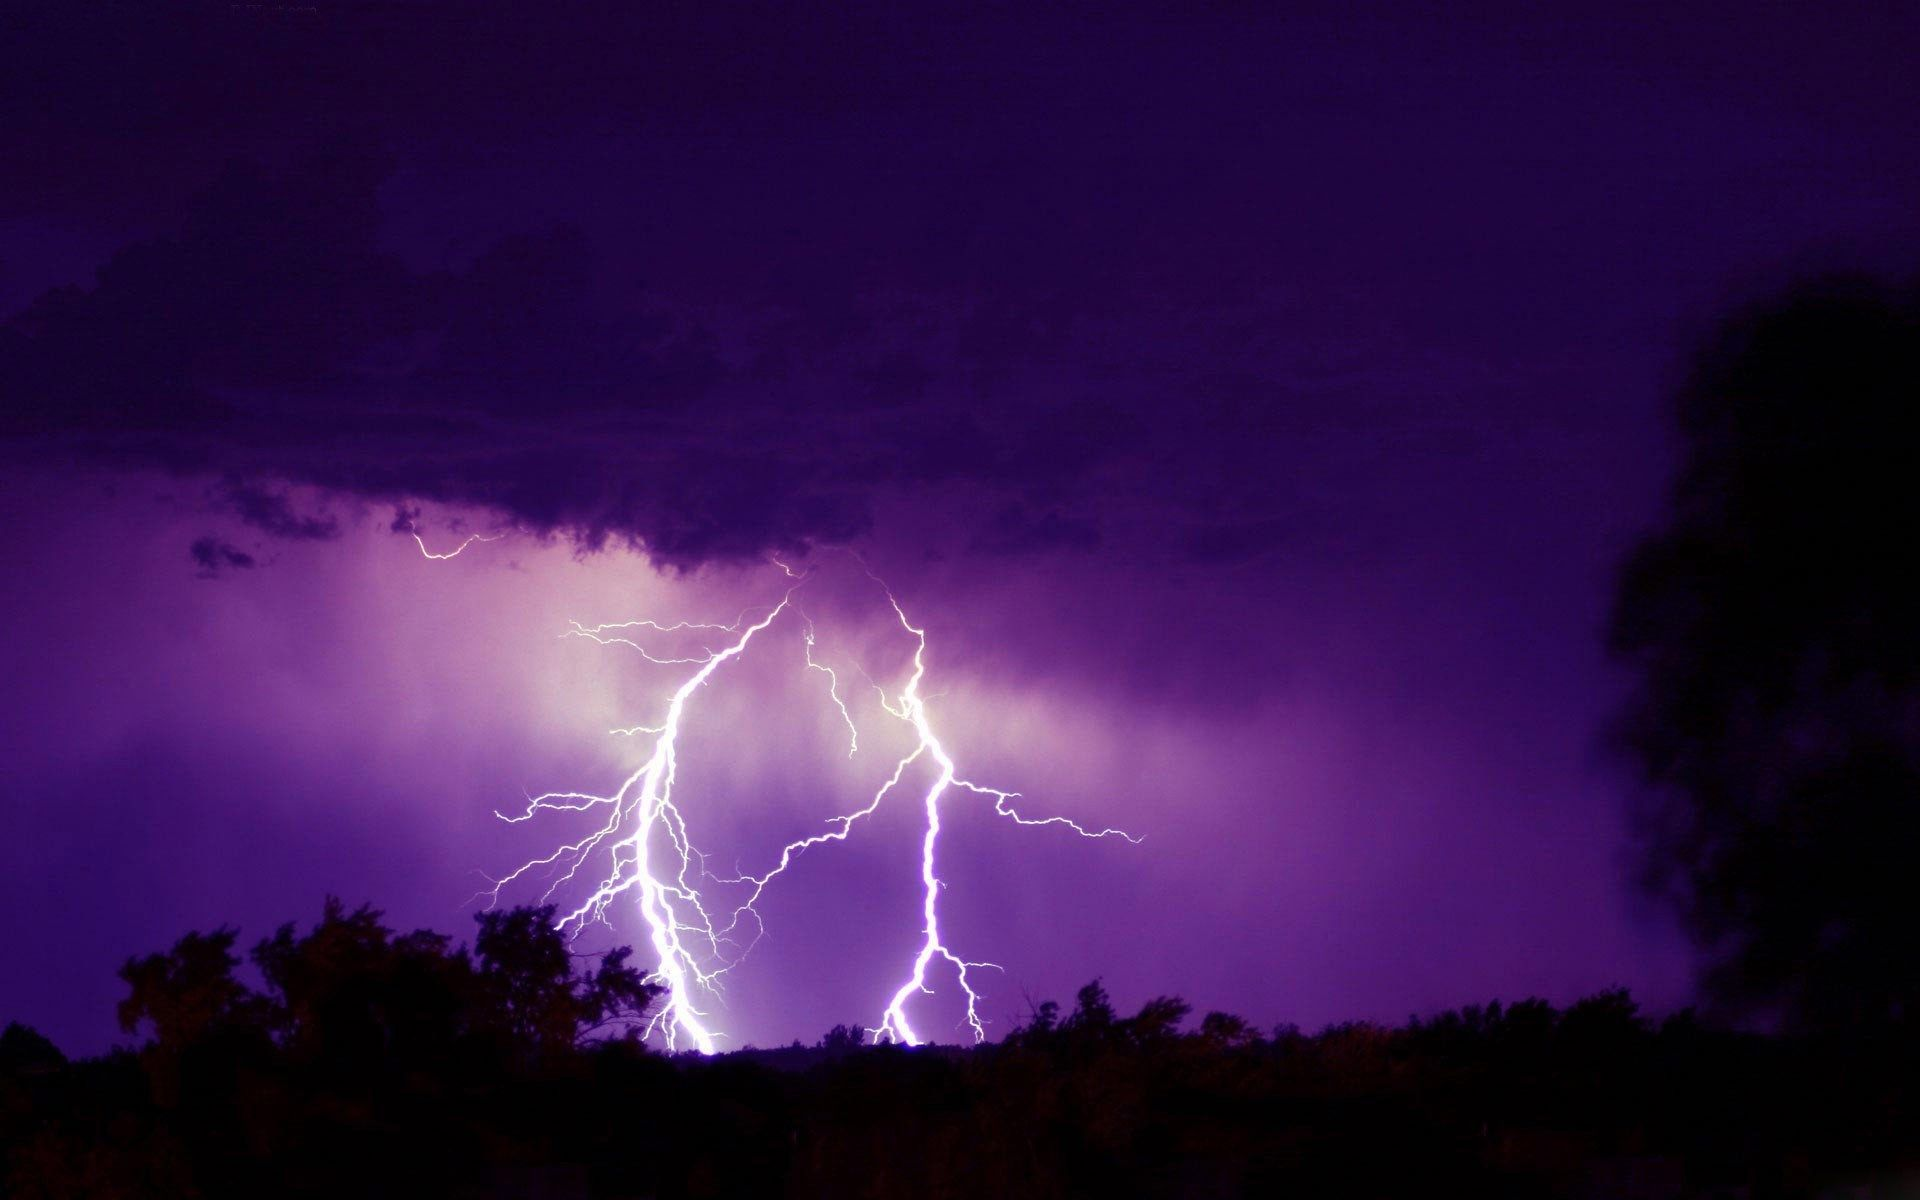 Dark Wallpaper Desktop Backgrounds Dark Purple Aesthetic Purple Aesthetic Purple Lightning